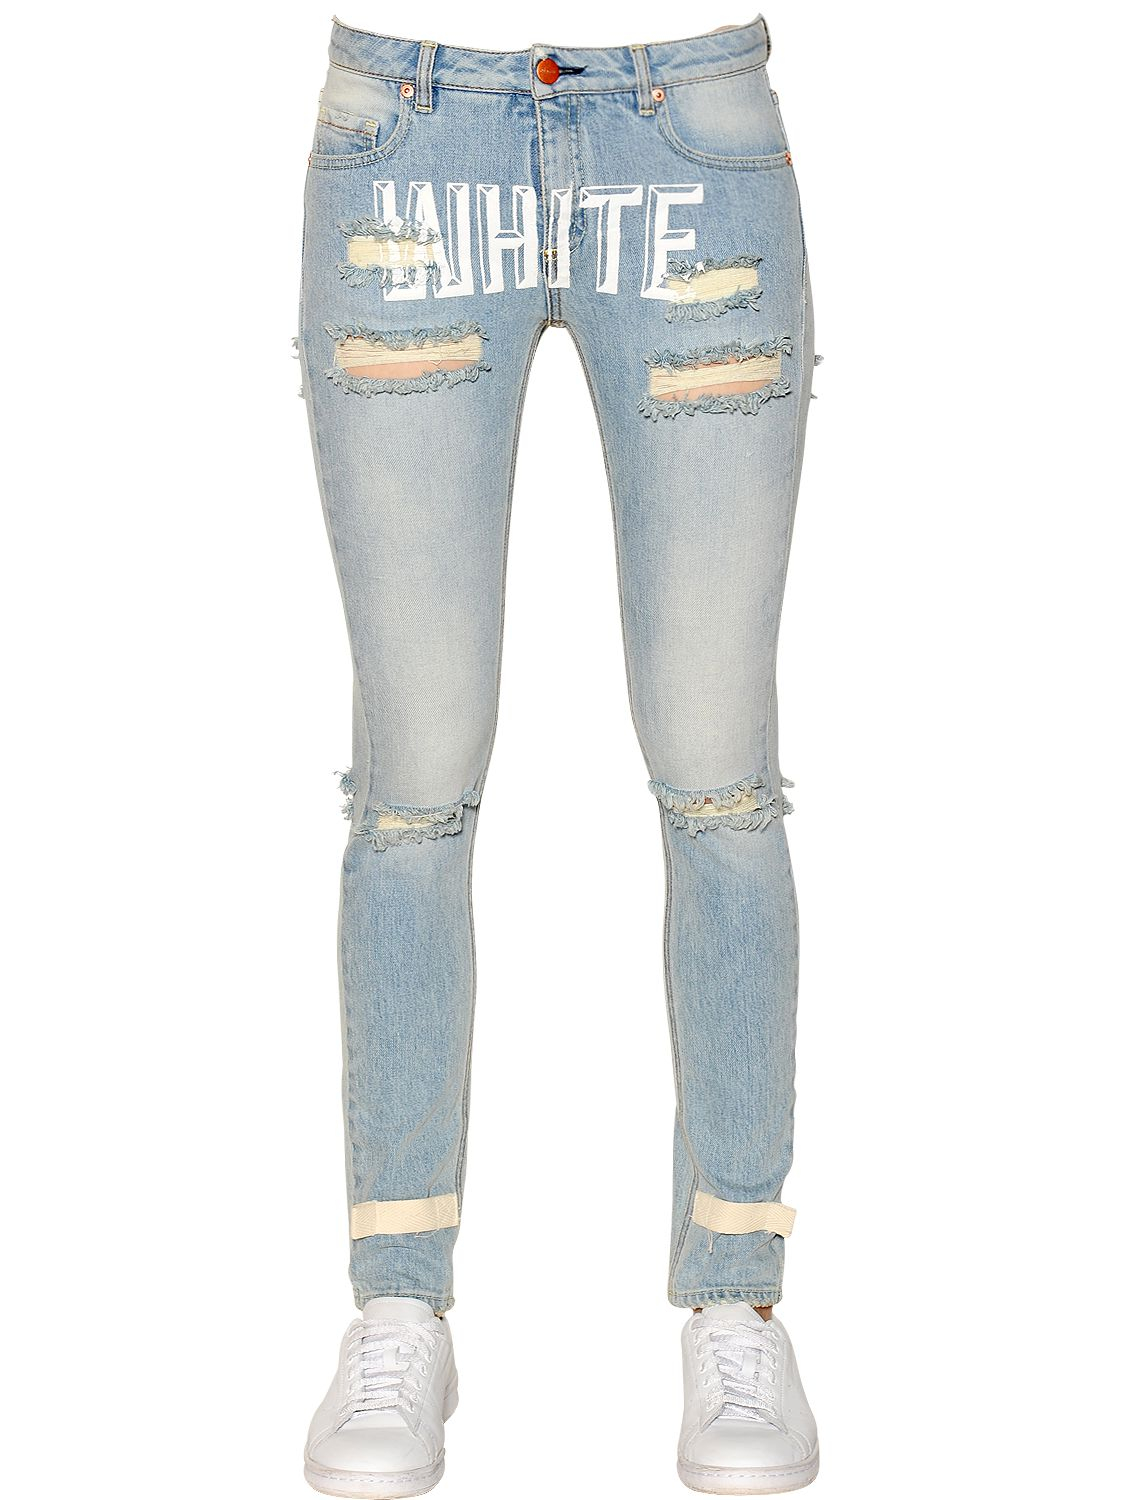 Off-white c/o virgil abloh Destroyed Printed Cotton Denim Jeans in ...